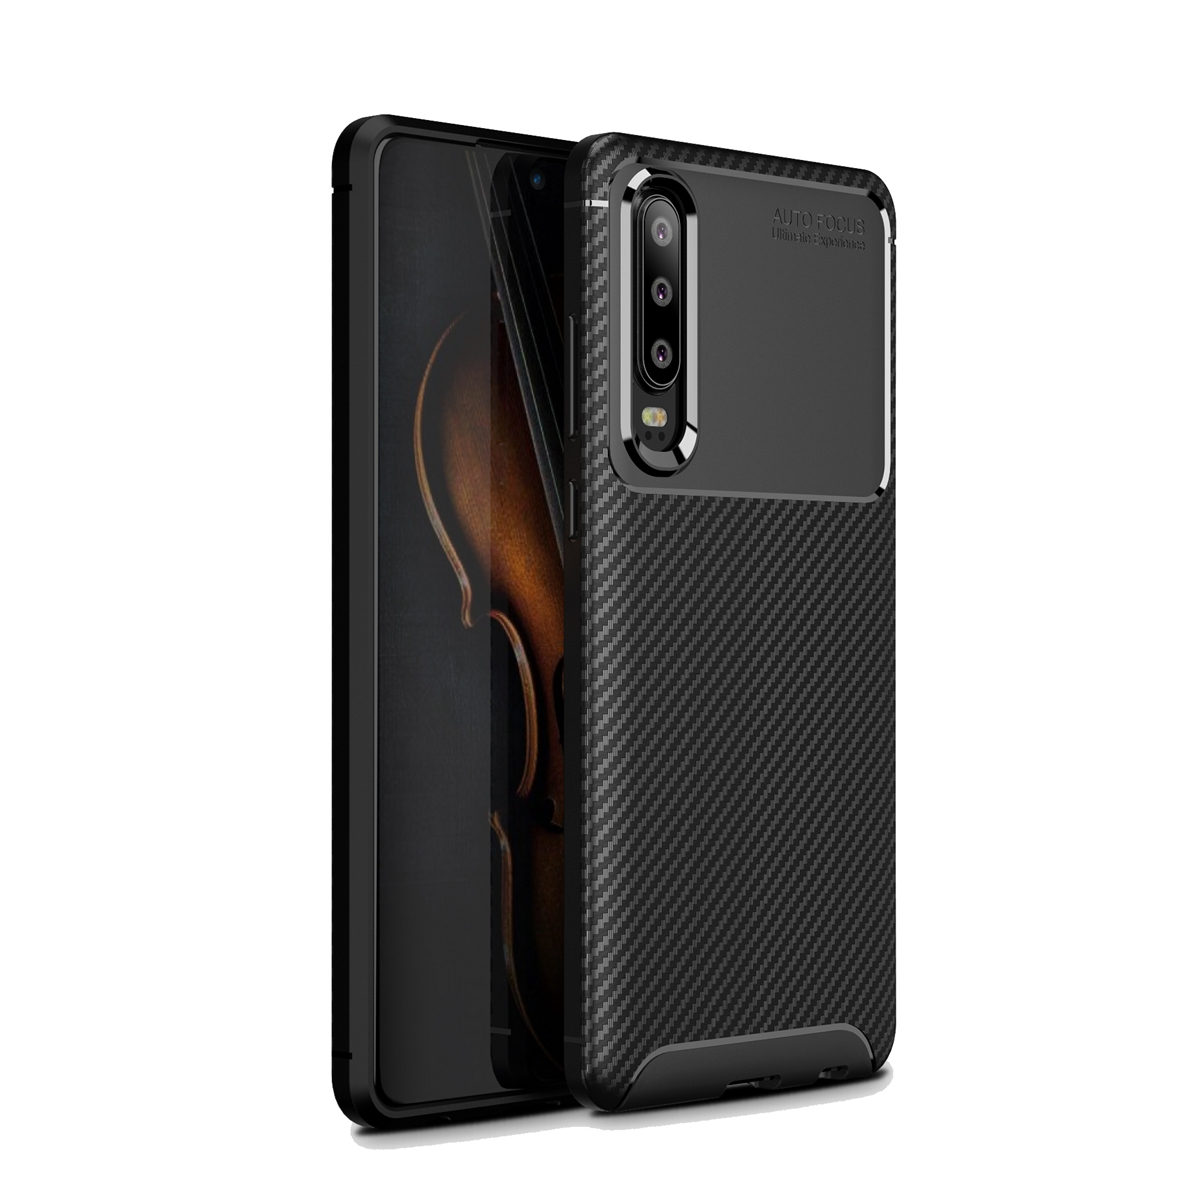 CASEWIN Soft TPU Case For Huawei P30 Pro Silicone Texture Carbon Anti-slip Armor Cover Shockproof